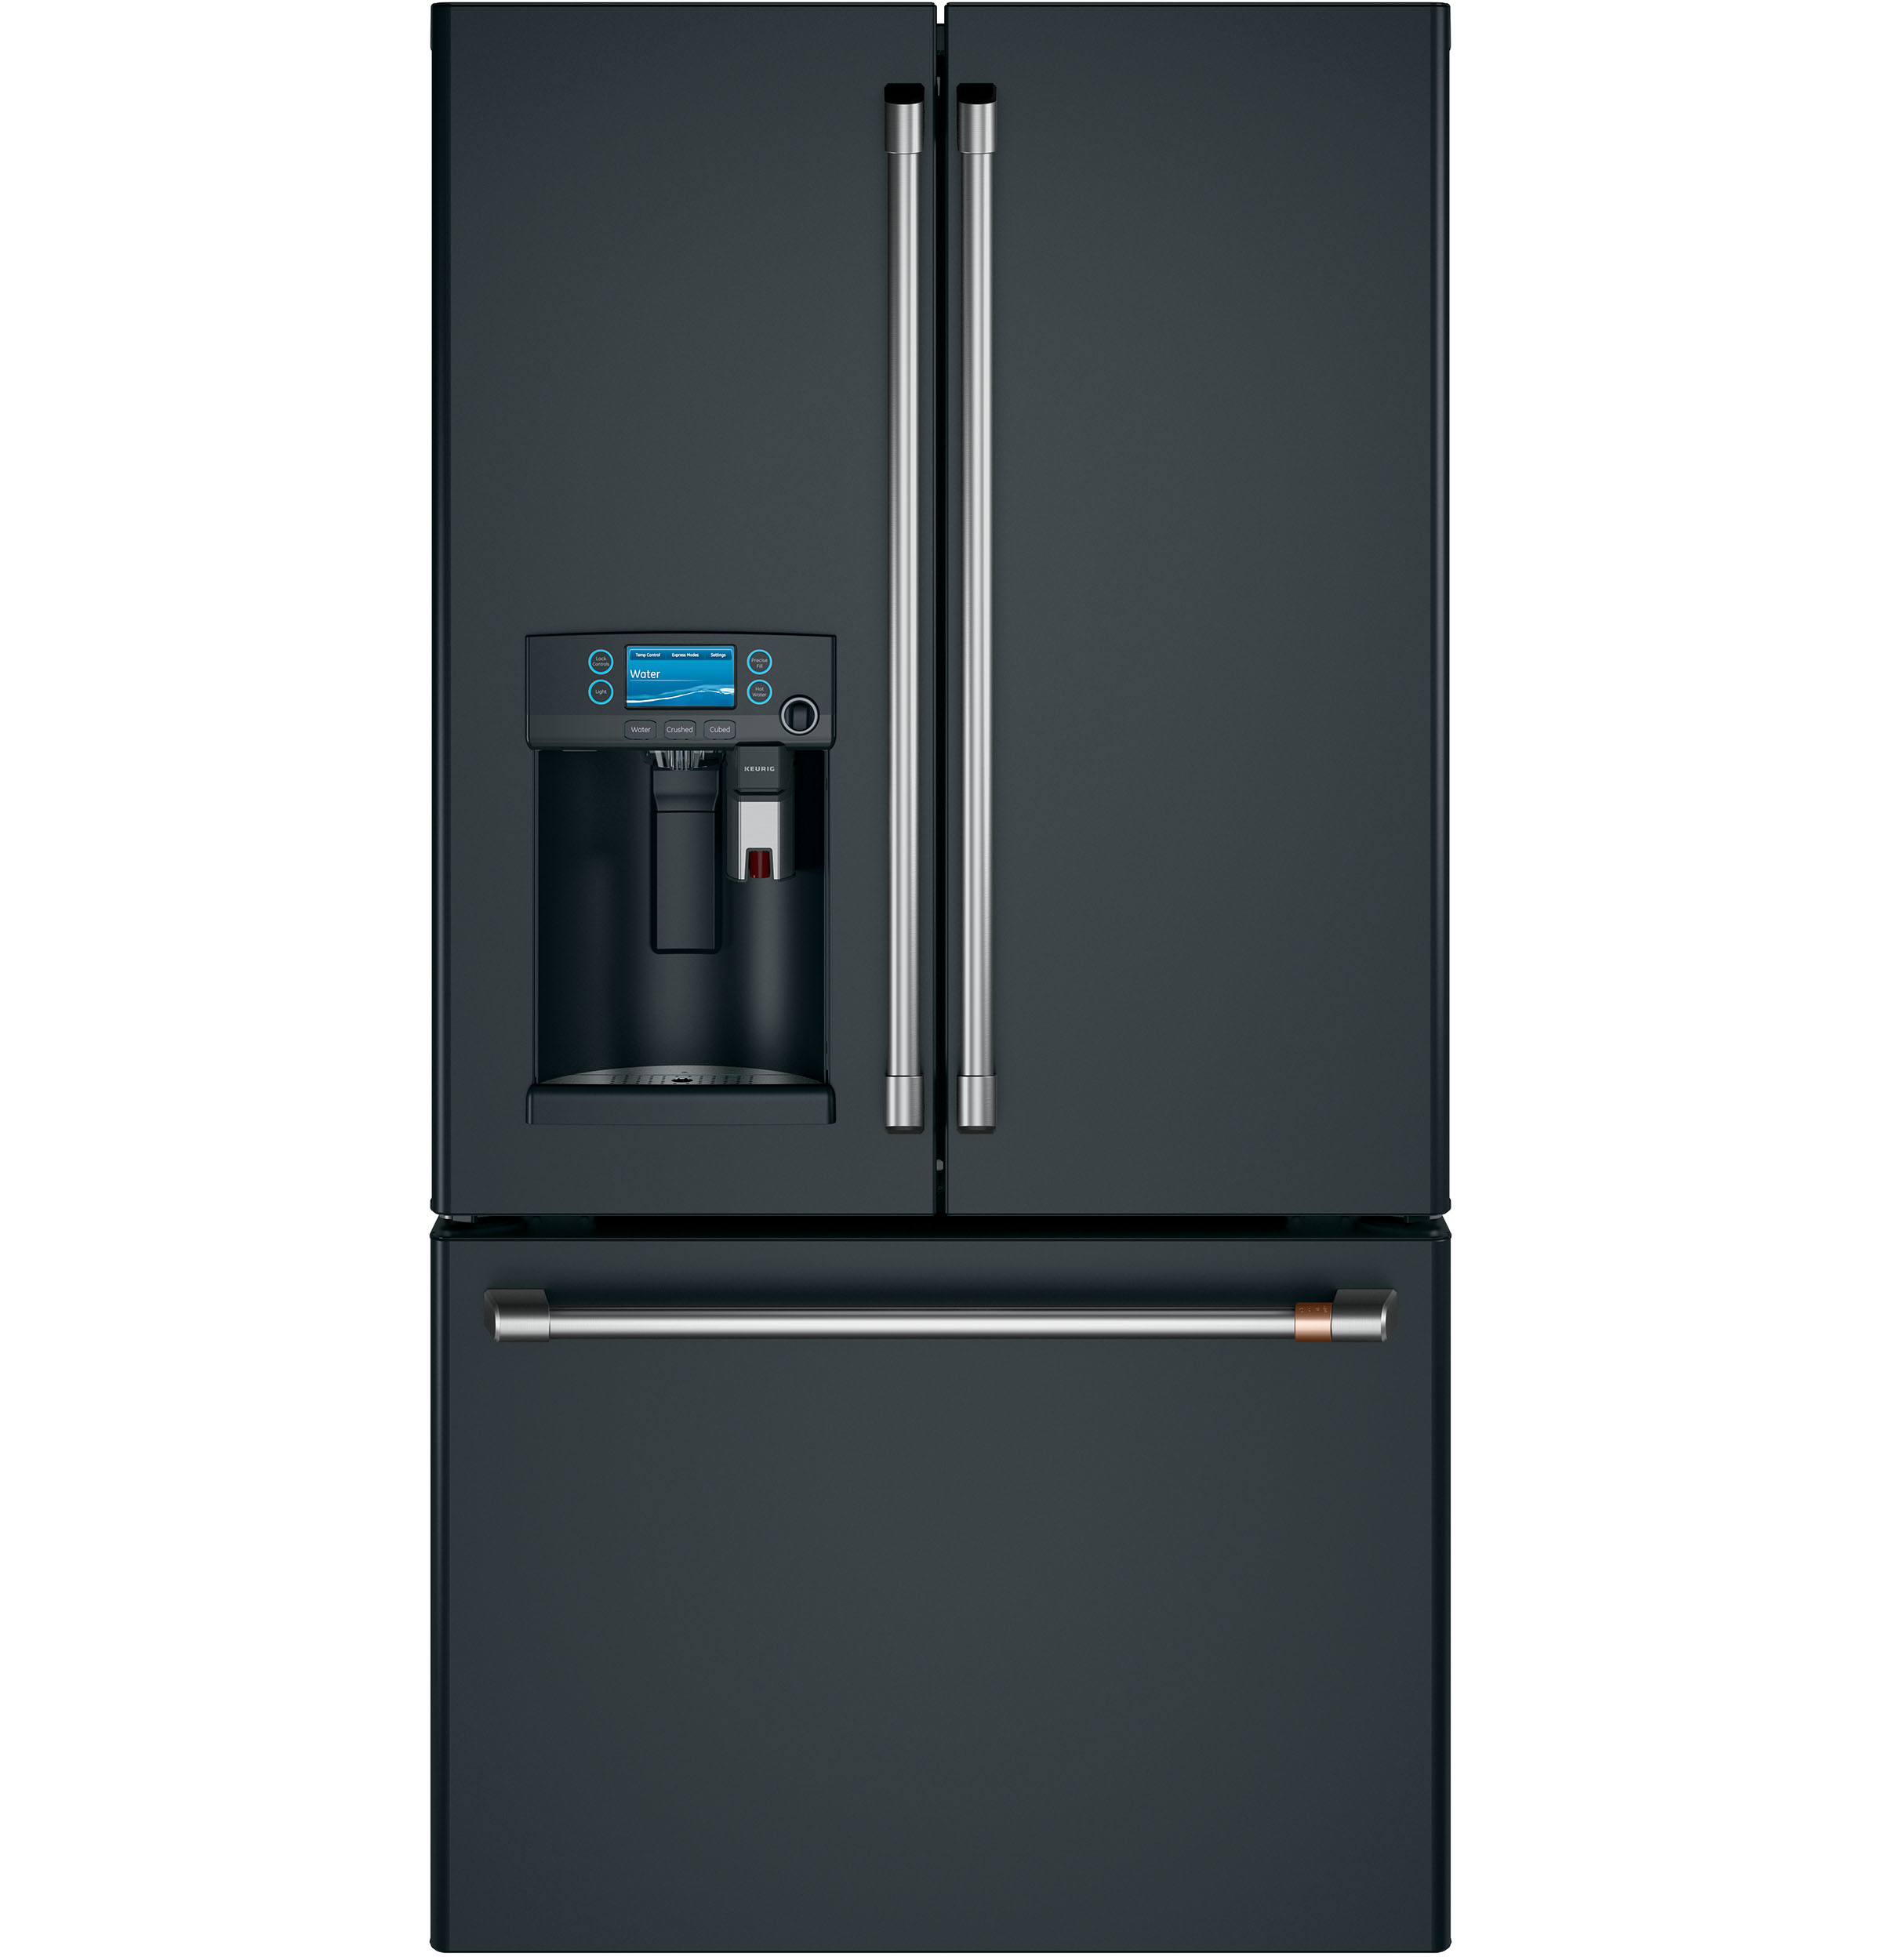 Cafe Café™ ENERGY STAR® 22.2 Cu. Ft. Counter-Depth French-Door Refrigerator with Keurig® K-Cup® Brewing System